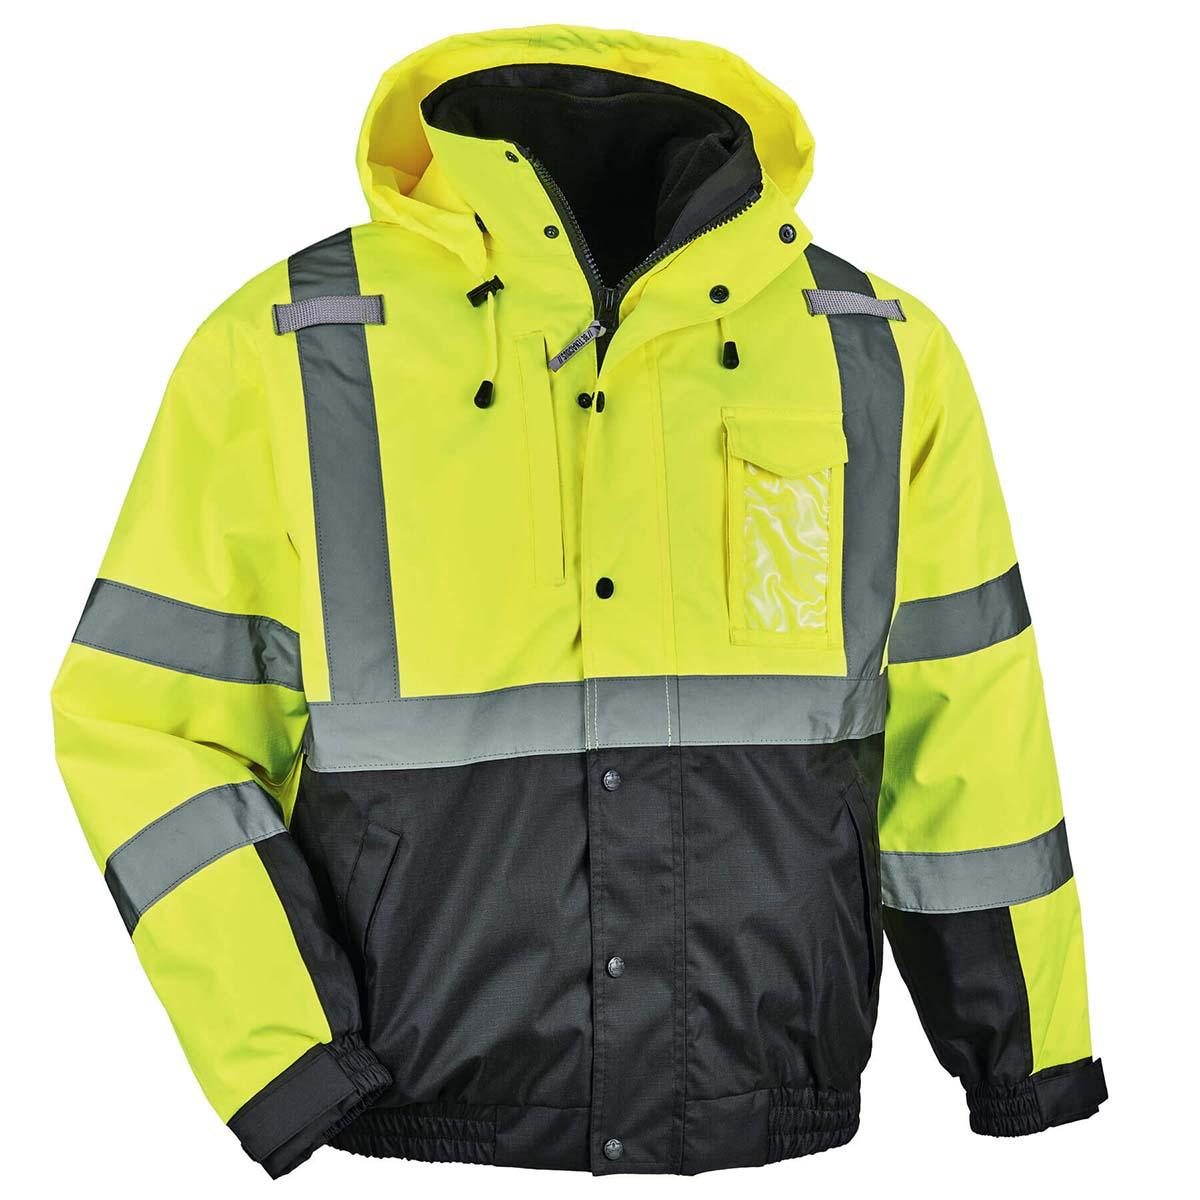 8381 Type R Class 3 Performance 3-in-1 Bomber Jacket